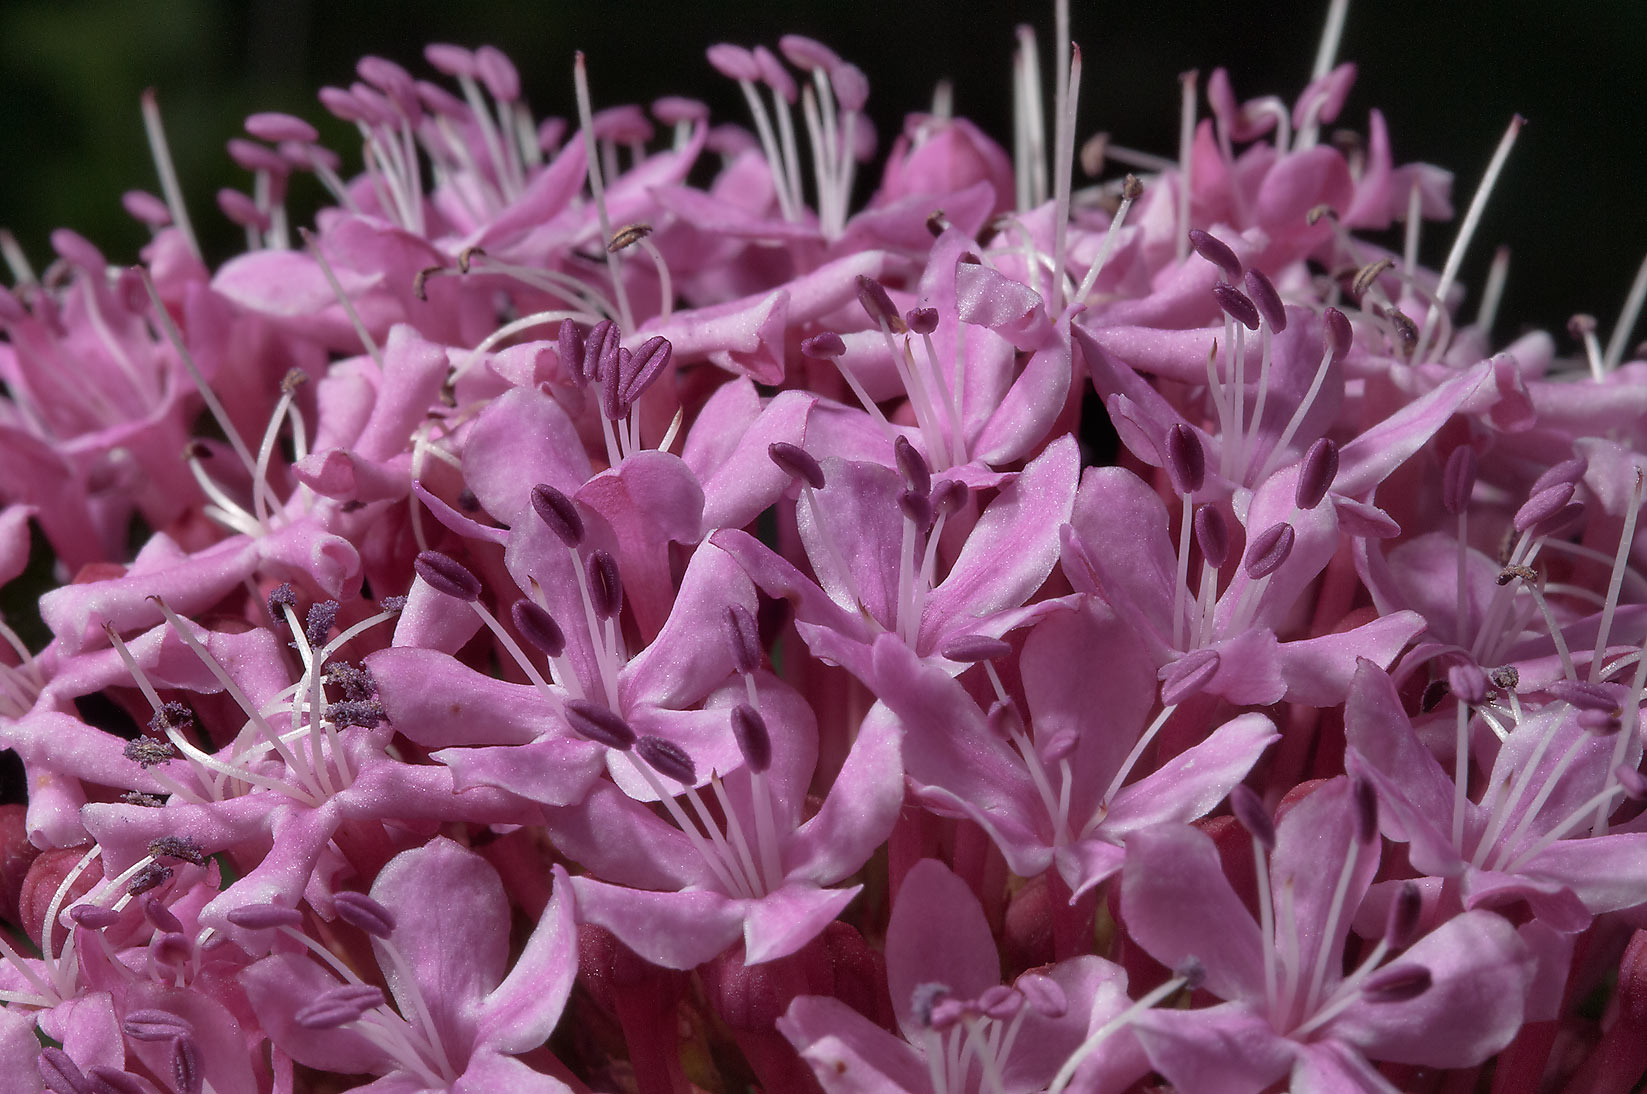 Flowers of Cashmere Bouquet (Clerodendron bungei...Rose Emporium. Independence, Texas